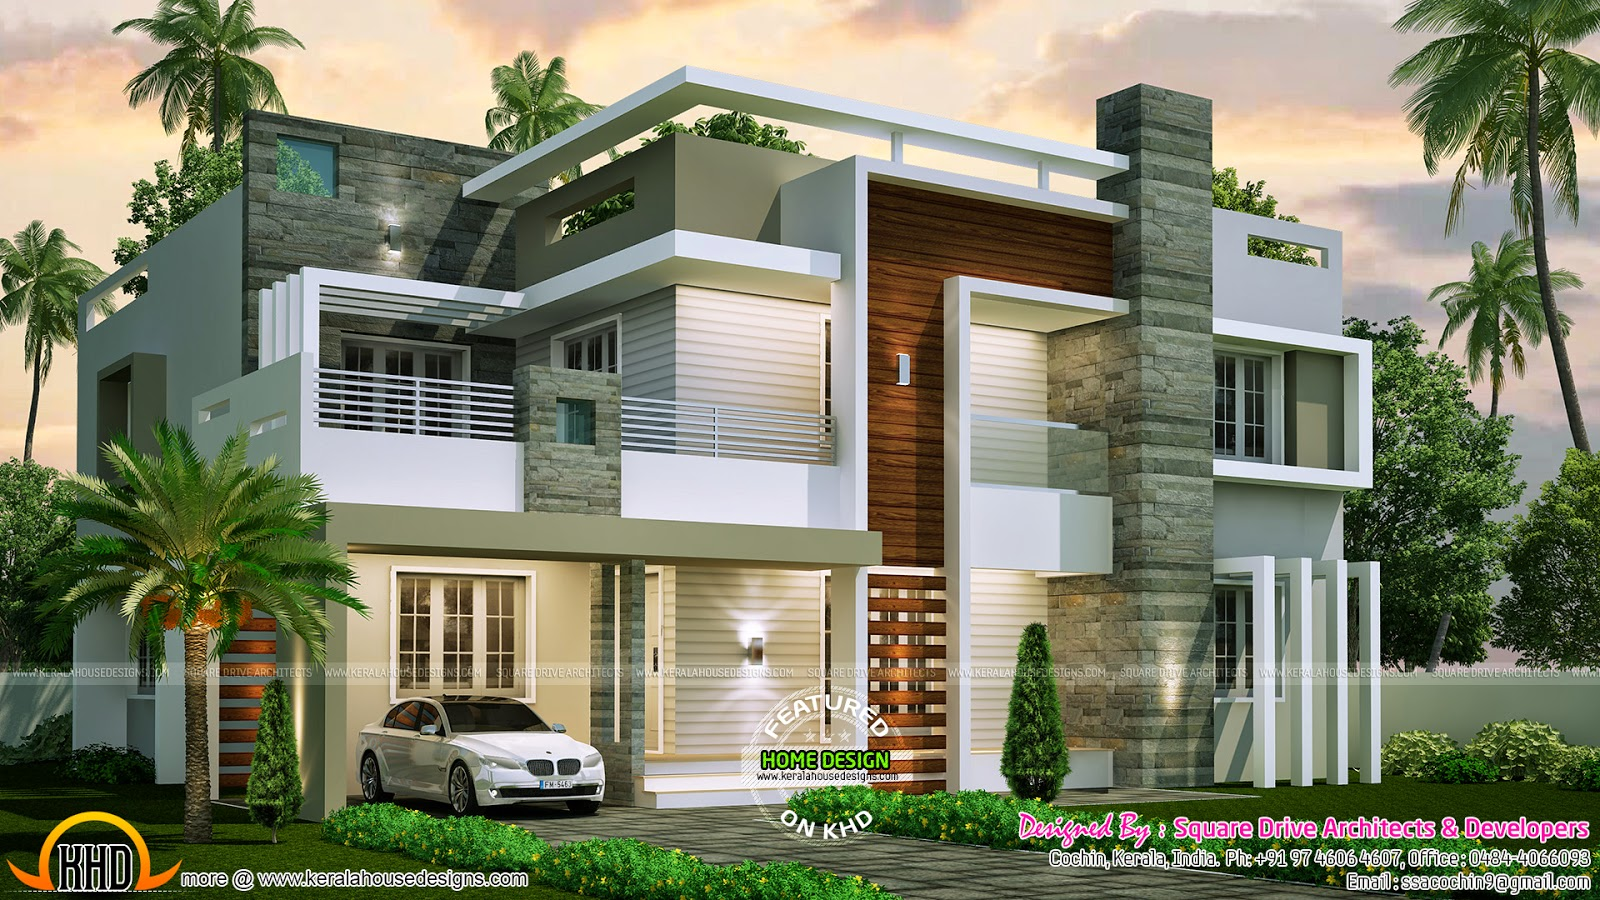 4 bedroom contemporary home design kerala home design On contemporary house plans